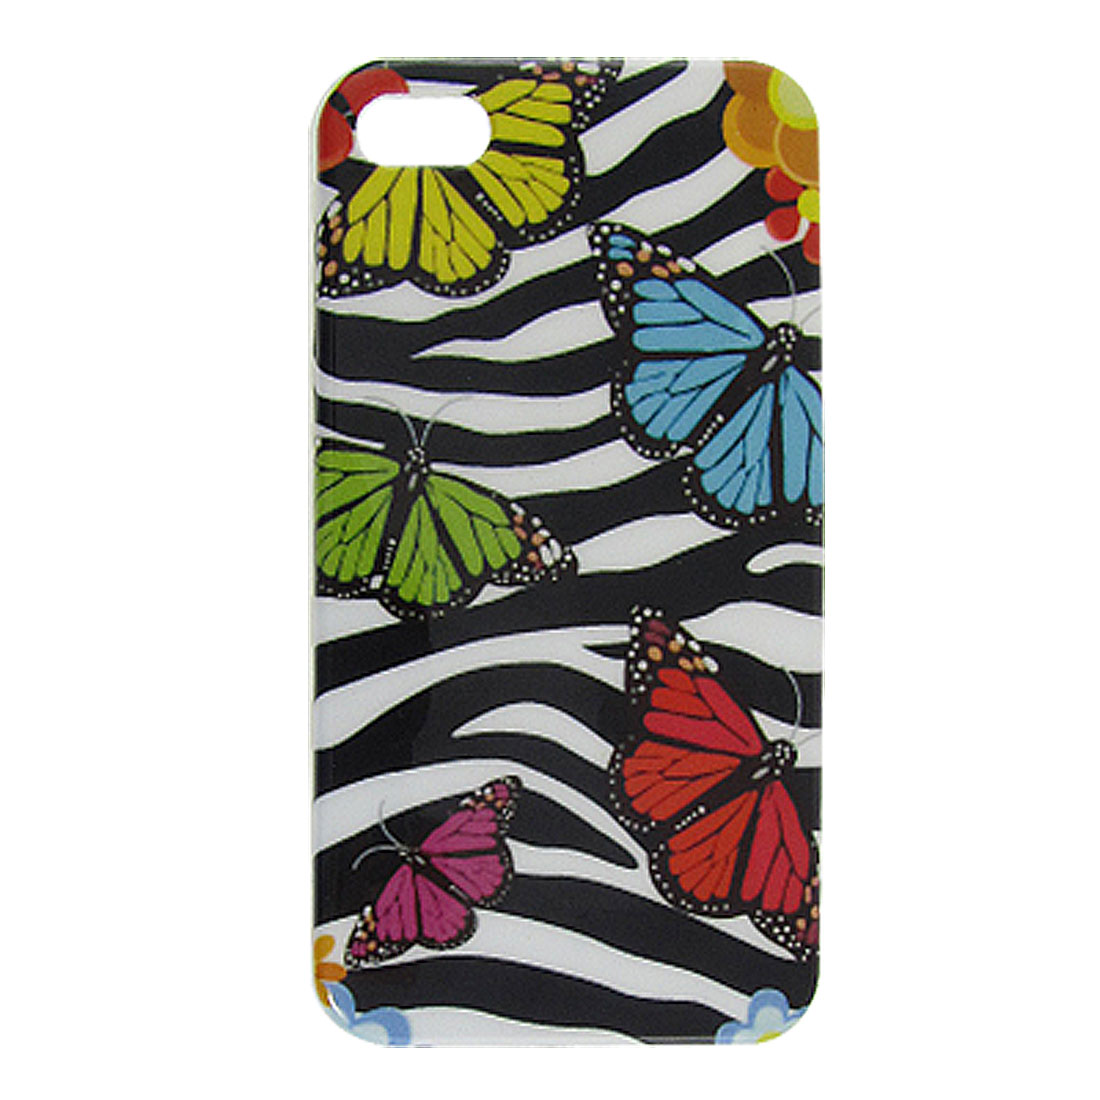 Zebra Pattern Butterflies Print Back Cover Shell for iPhone 4 4G 4GS 4S